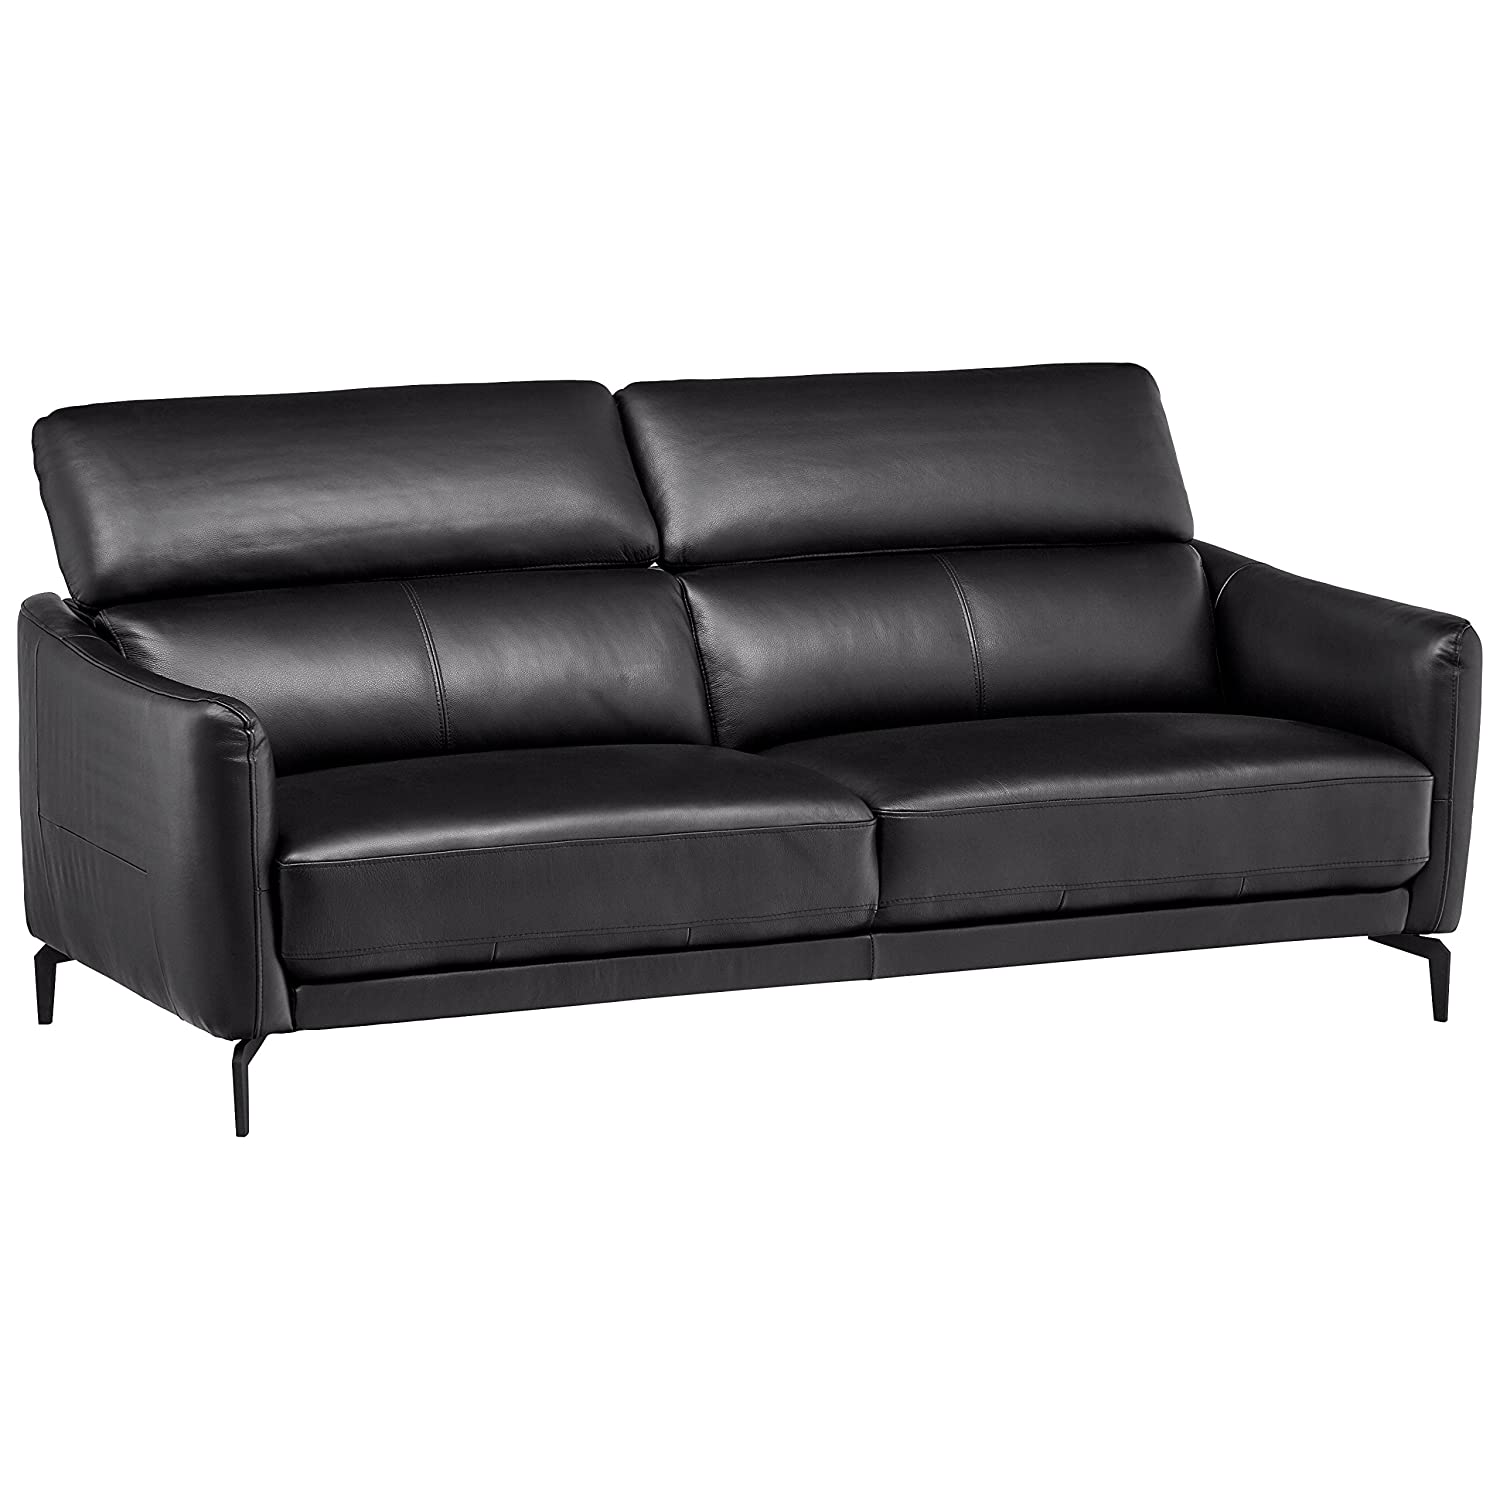 Rivet Kaden Mid-Century Modern Adjustable Headrest Leather Loveseat Sofa,  77.5\